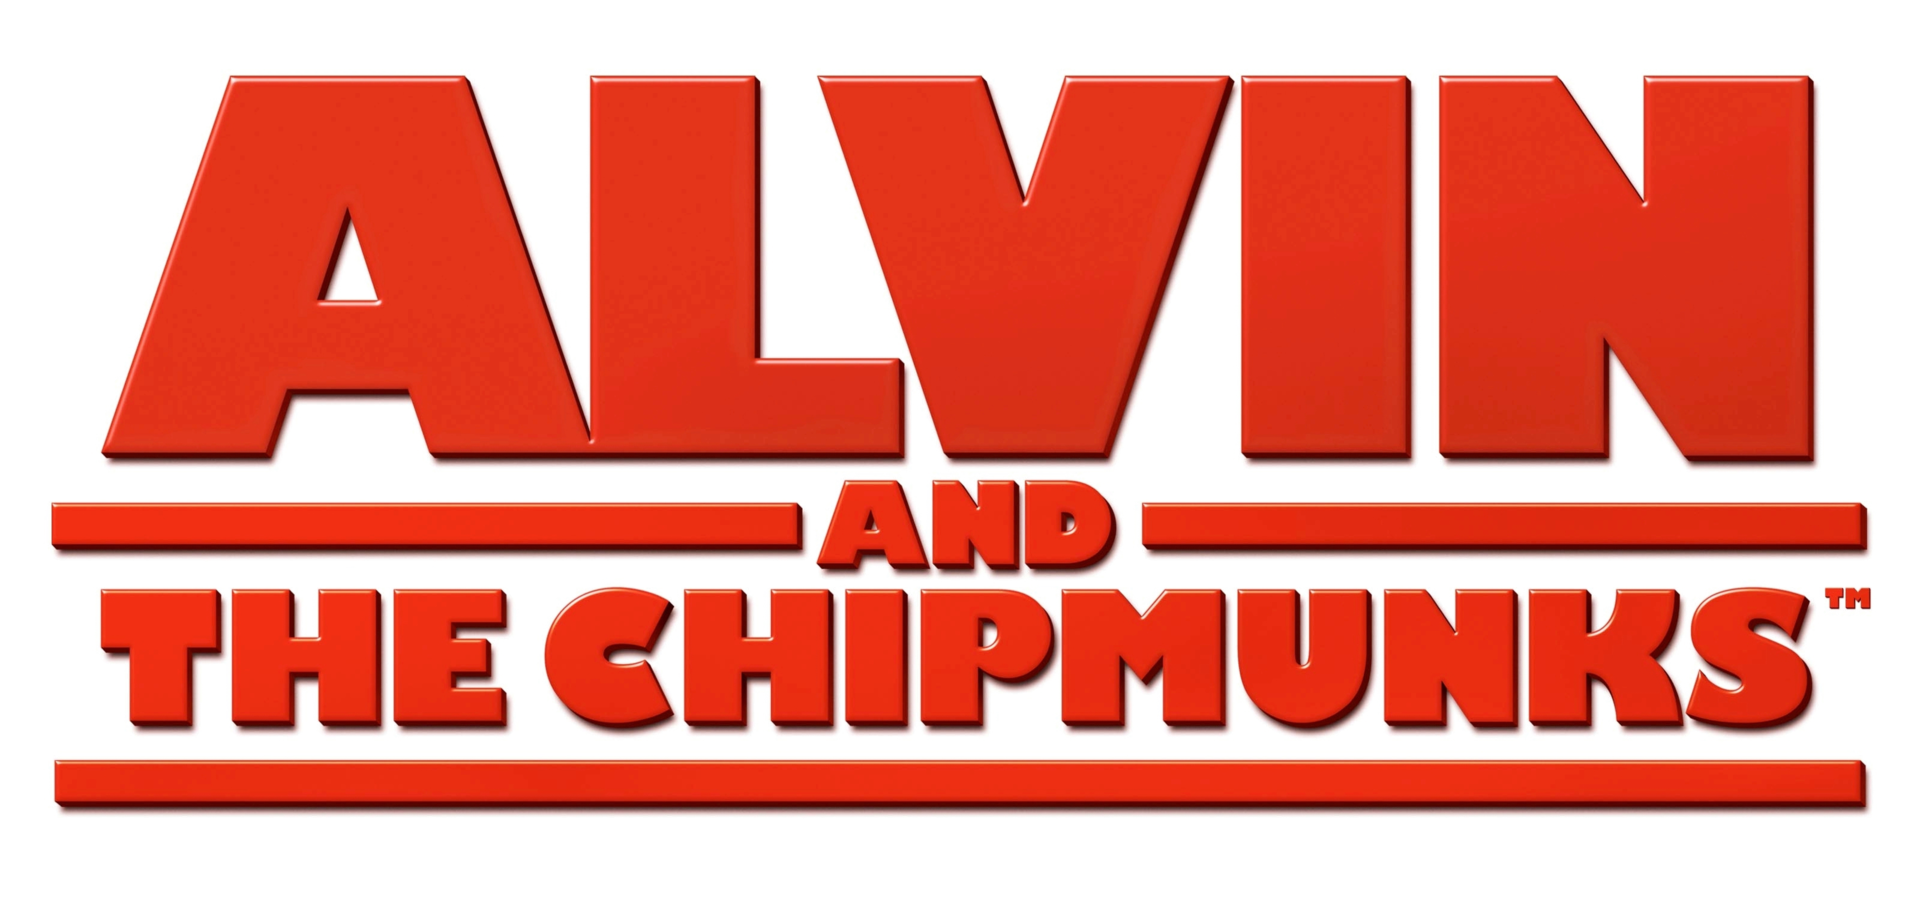 alvin and the chipmunks film series wikipedia